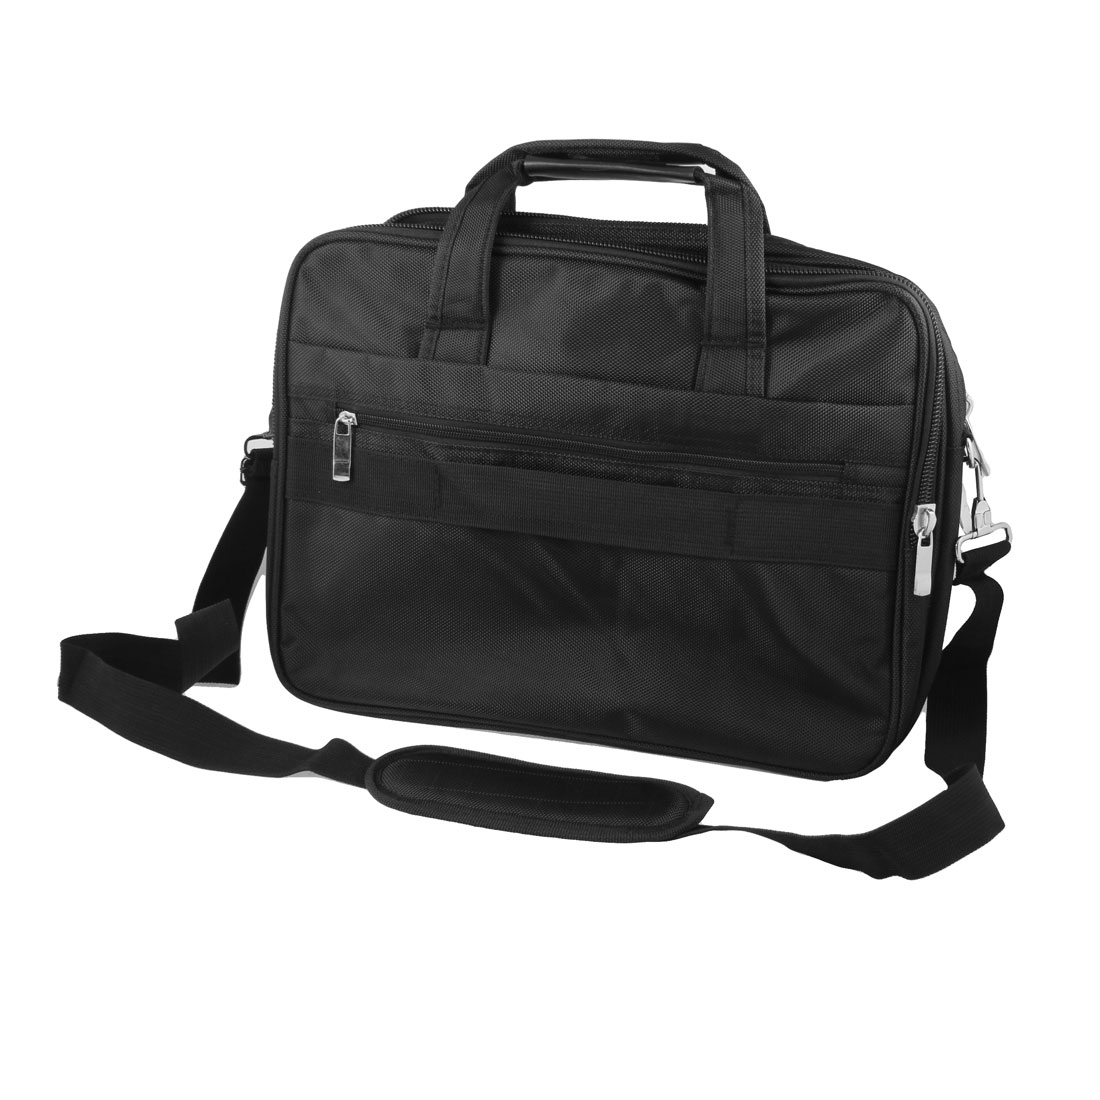 "15.4"" 15.6"" Laptop Computer Carry Bag Case Pouch w Shoulder Strap Black for HP"